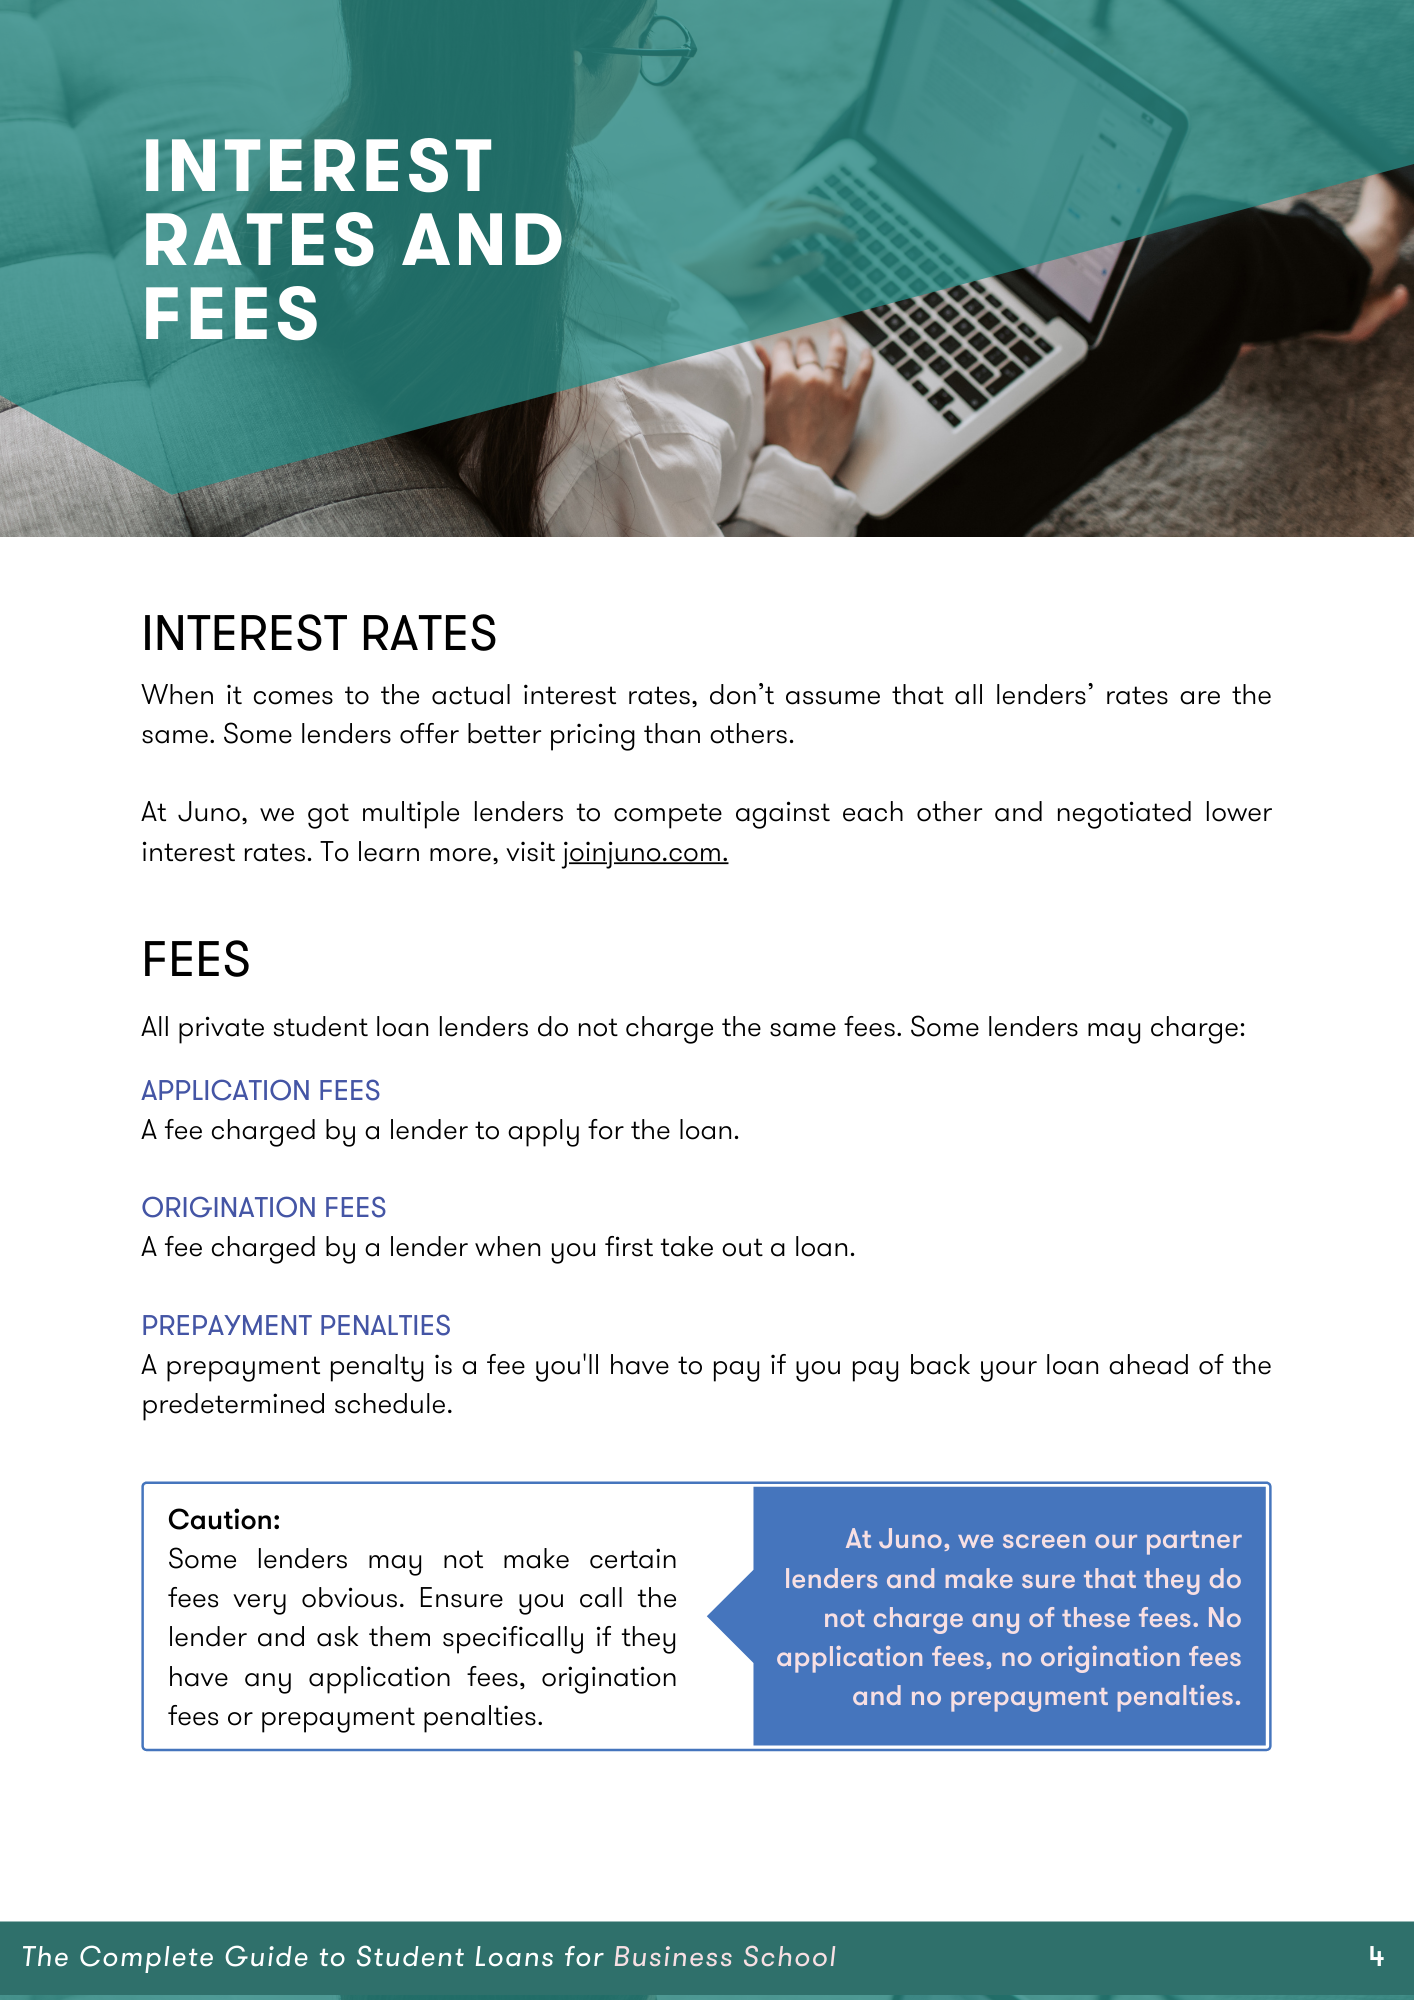 page 6 of guide about fees and interest